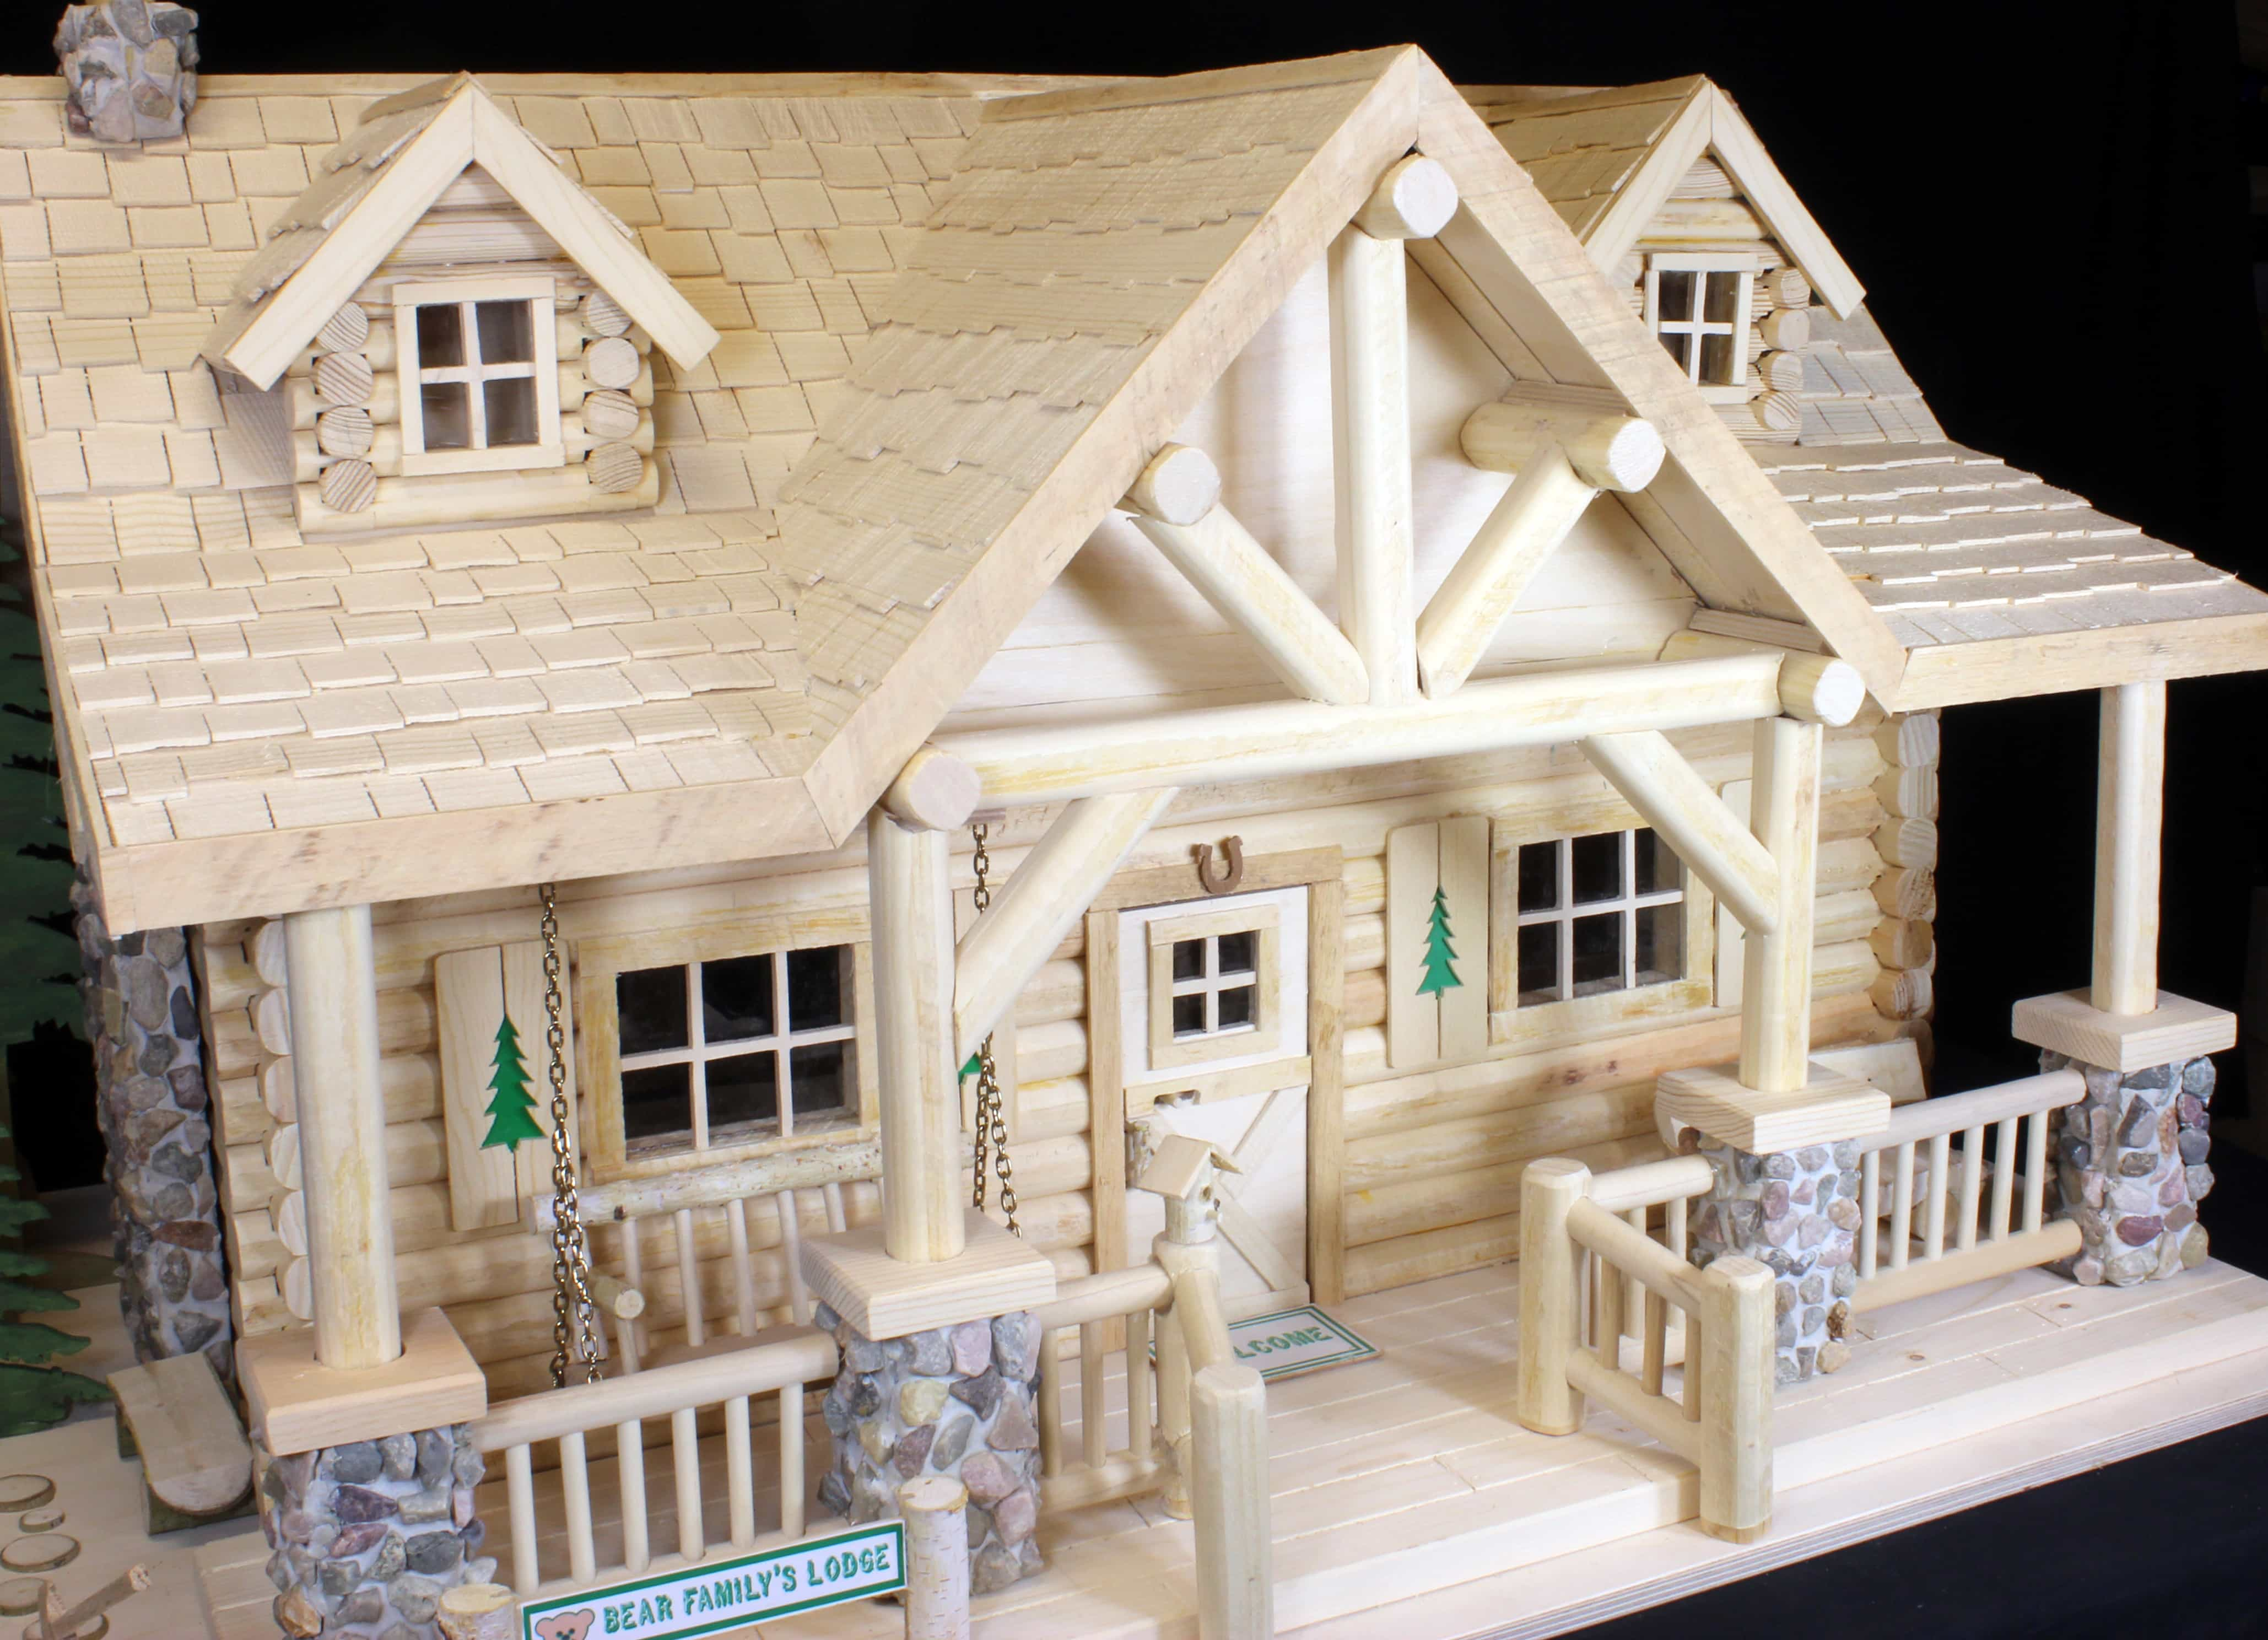 The plan details wood and rockwork, a woodworking plan package